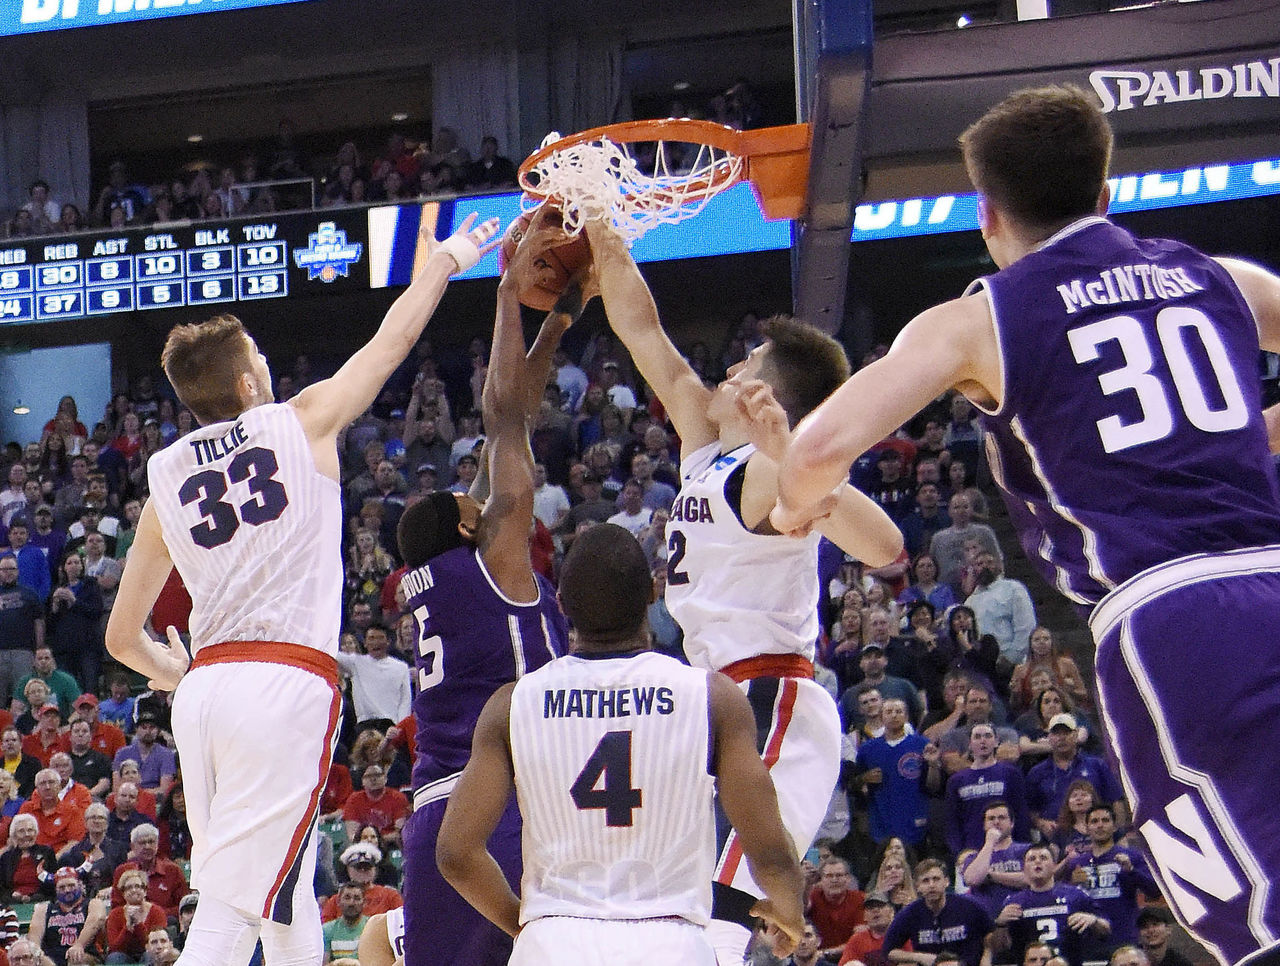 Cropped_2017-03-19t001857z_1833005368_nocid_rtrmadp_3_ncaa-basketball-ncaa-tournament-second-round-gonzaga-vs-northwestern